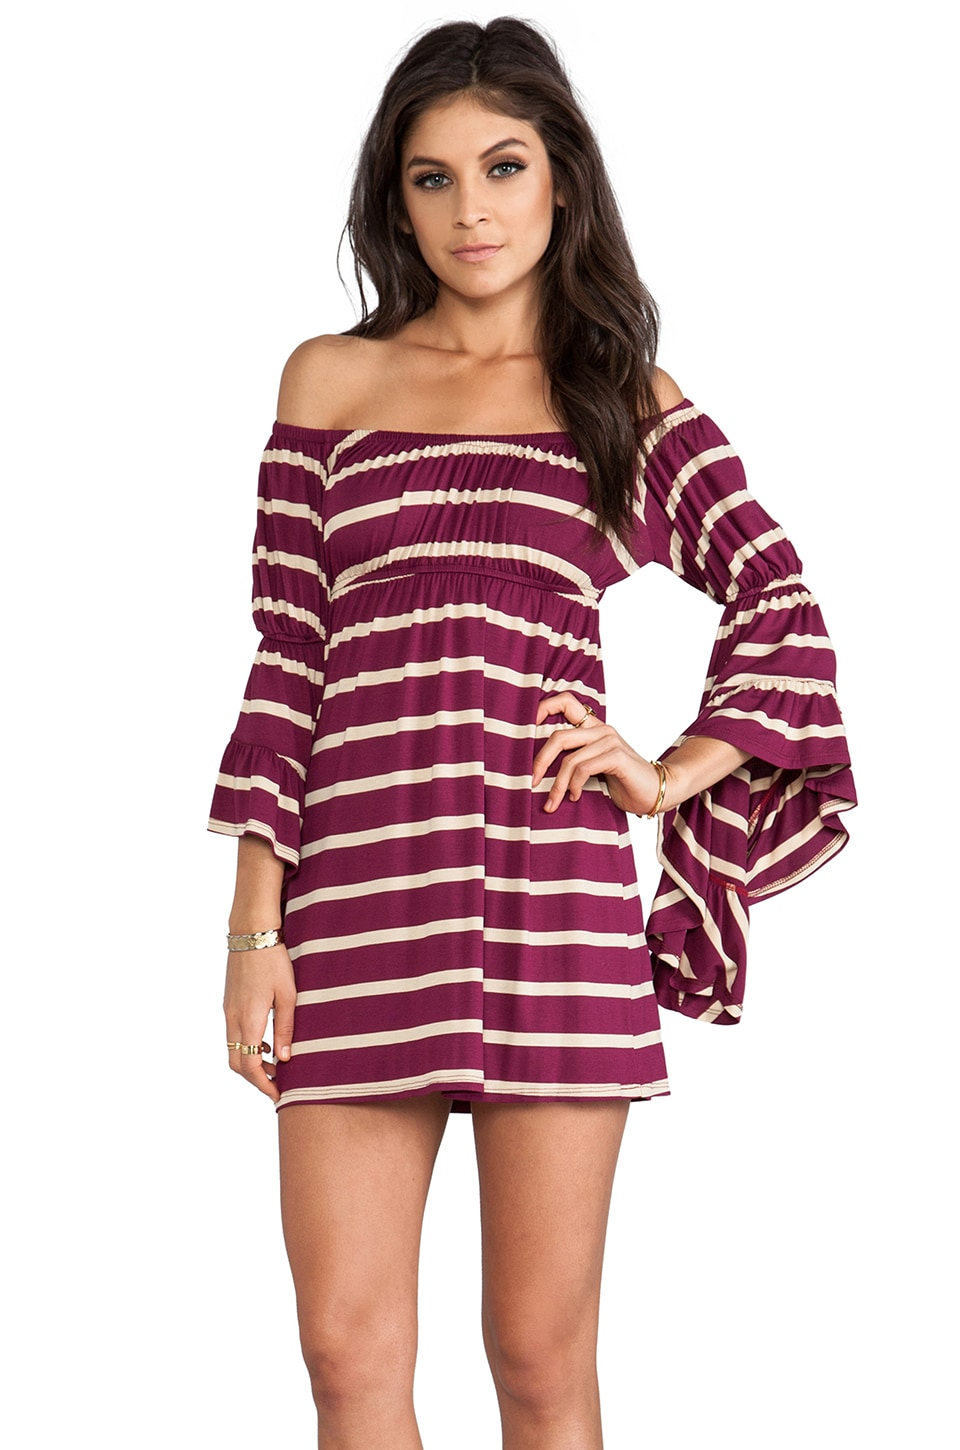 VAVA by Joy Han Tiffany Off the Shoulder Dress in Berry